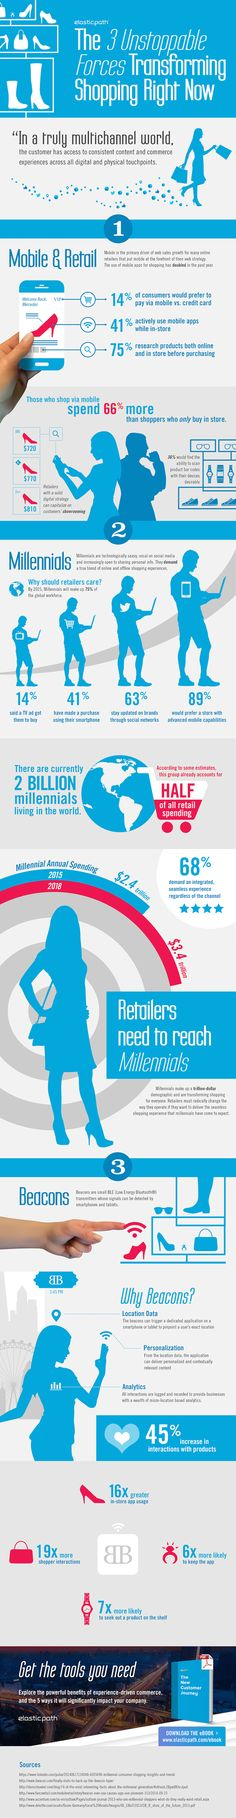 3 unstoppable forces transforming shopping (Infographic)